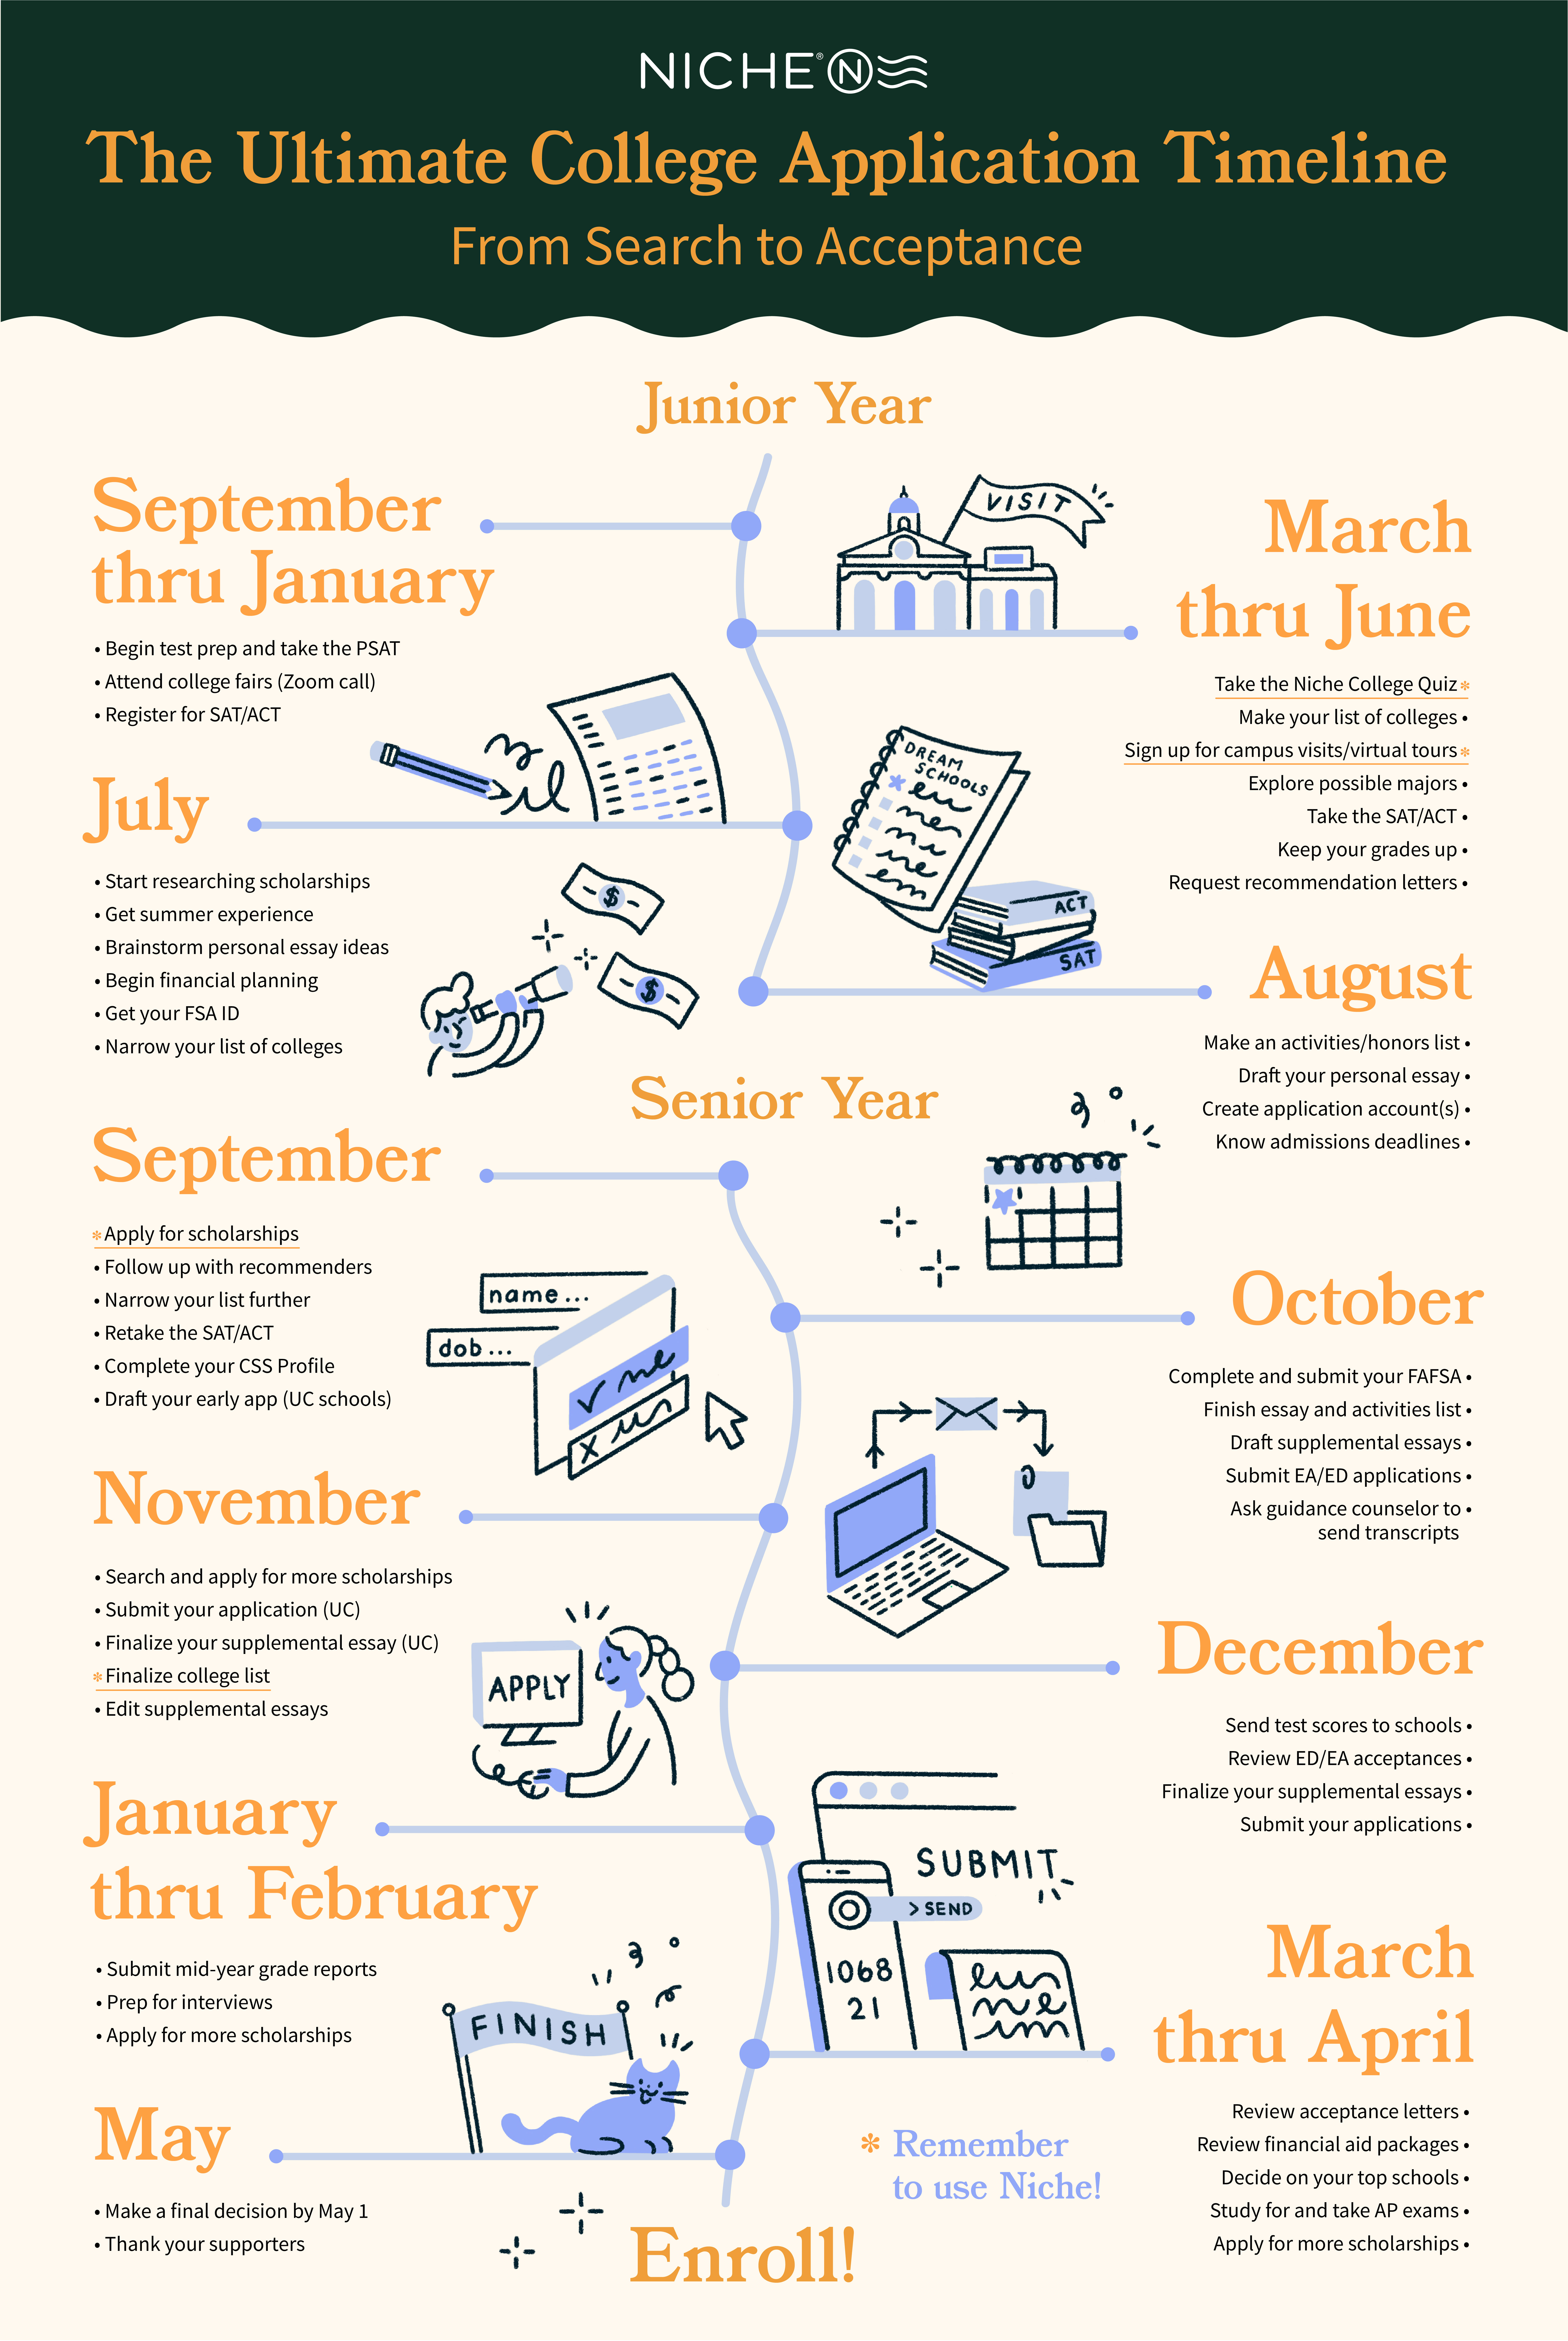 An infographic version of the ultimate college application timeline.